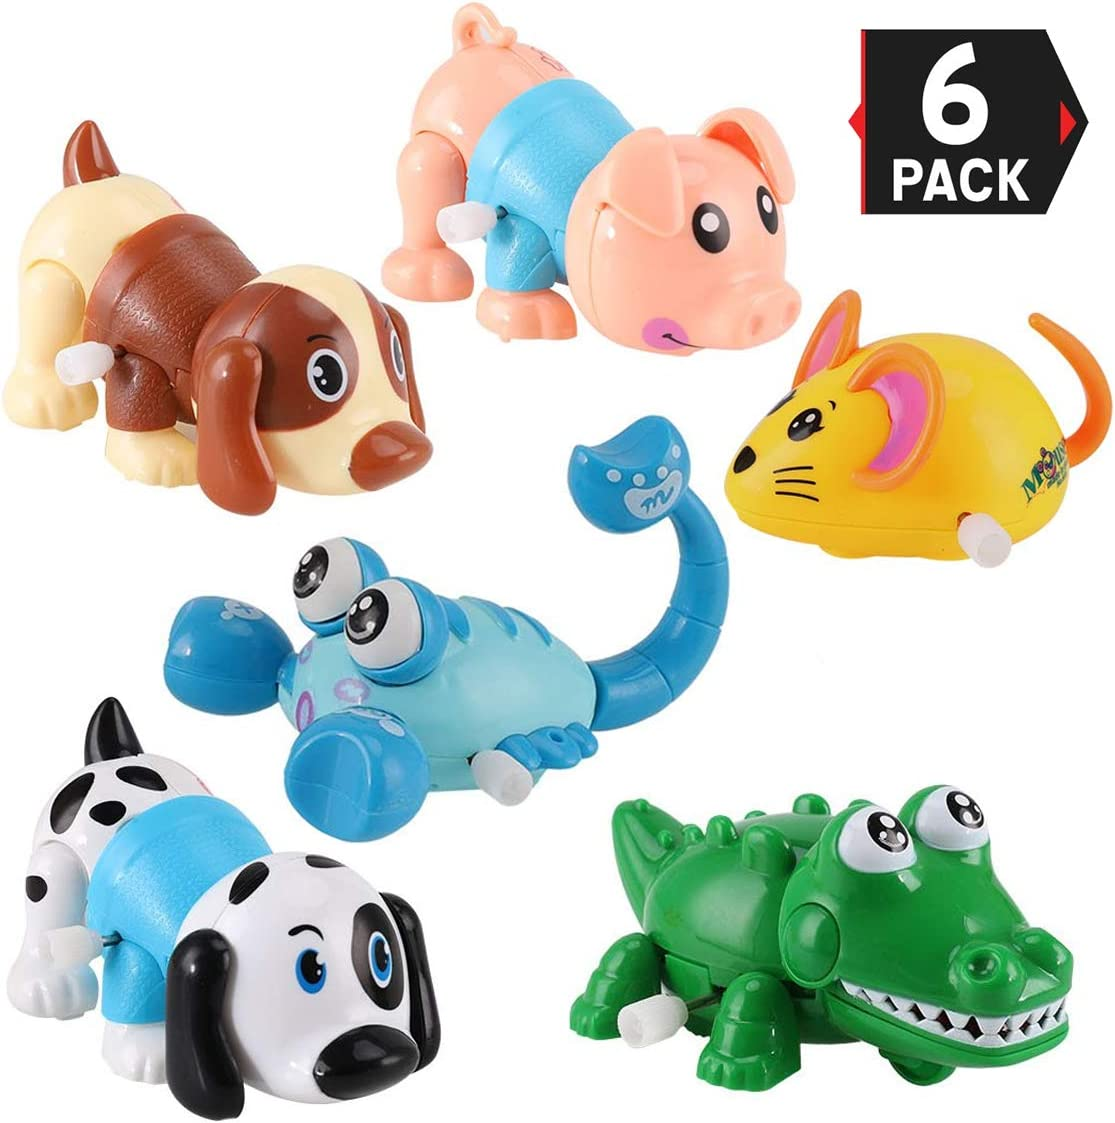 Includes Pig, Mouse, Dog, Scorpion, Crocodile, Puppy 6 Pack Big Wind Up Cartoon Animals for Kids Party Favors Carnival Prizes Classroom Goody Bag Fillers